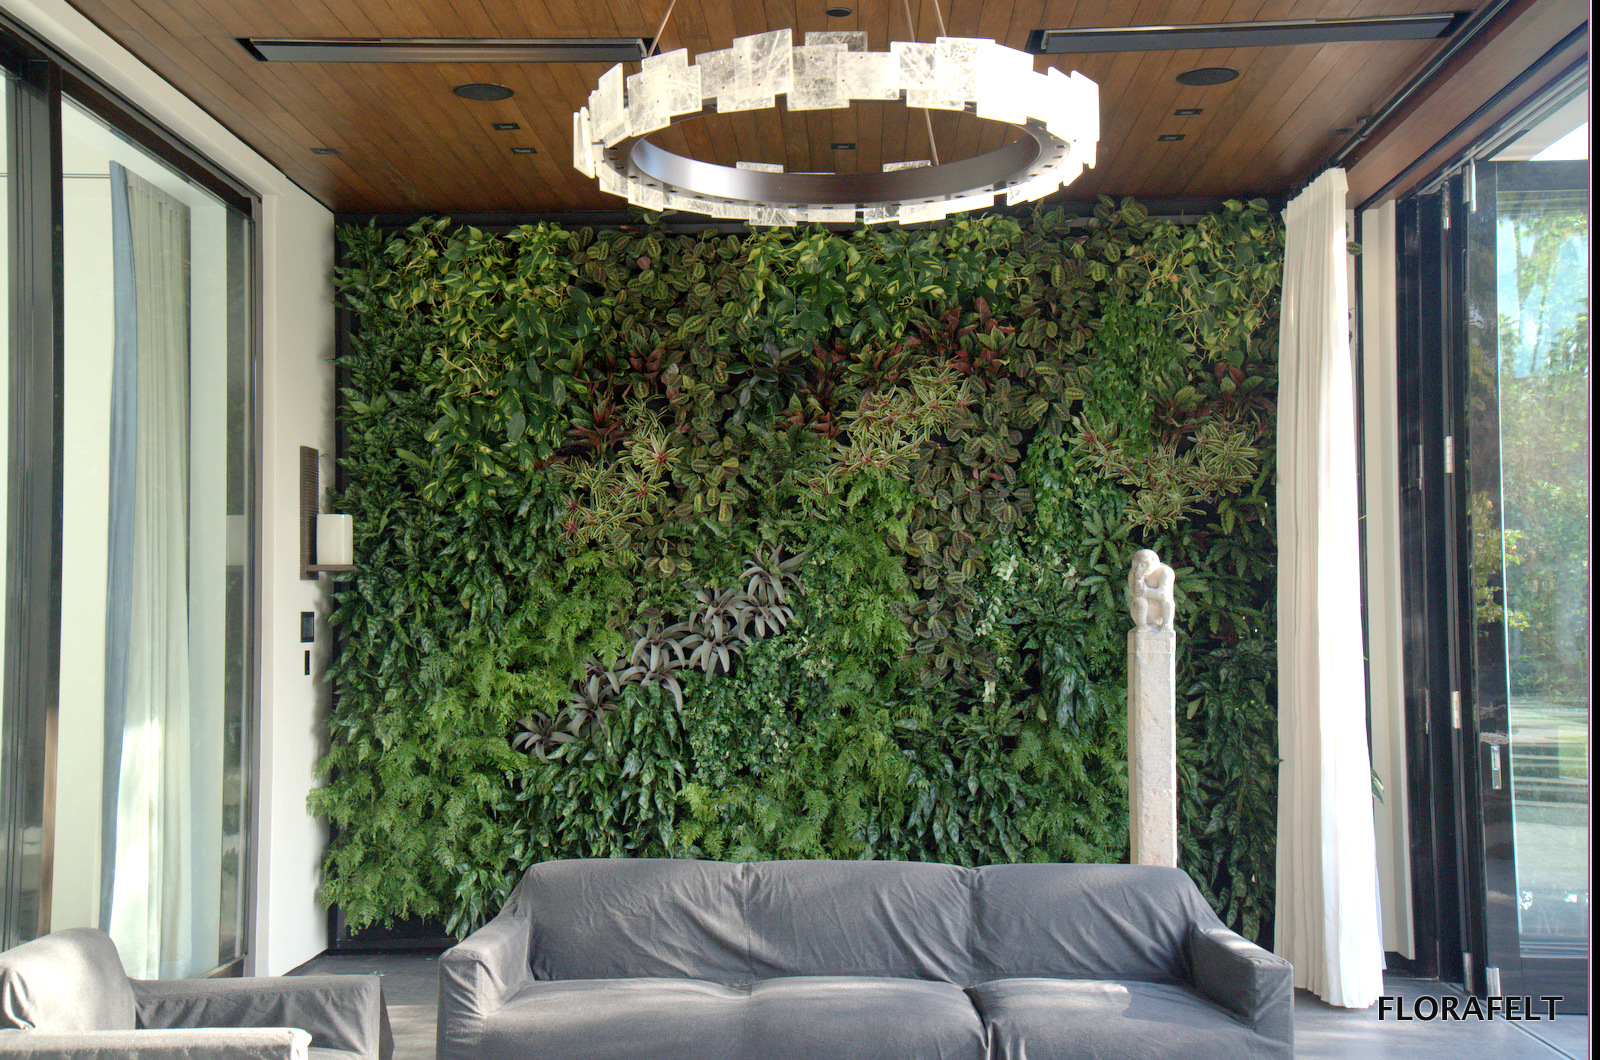 Florafelt Vertical Garden by Plants On Walls: Chris Bribach